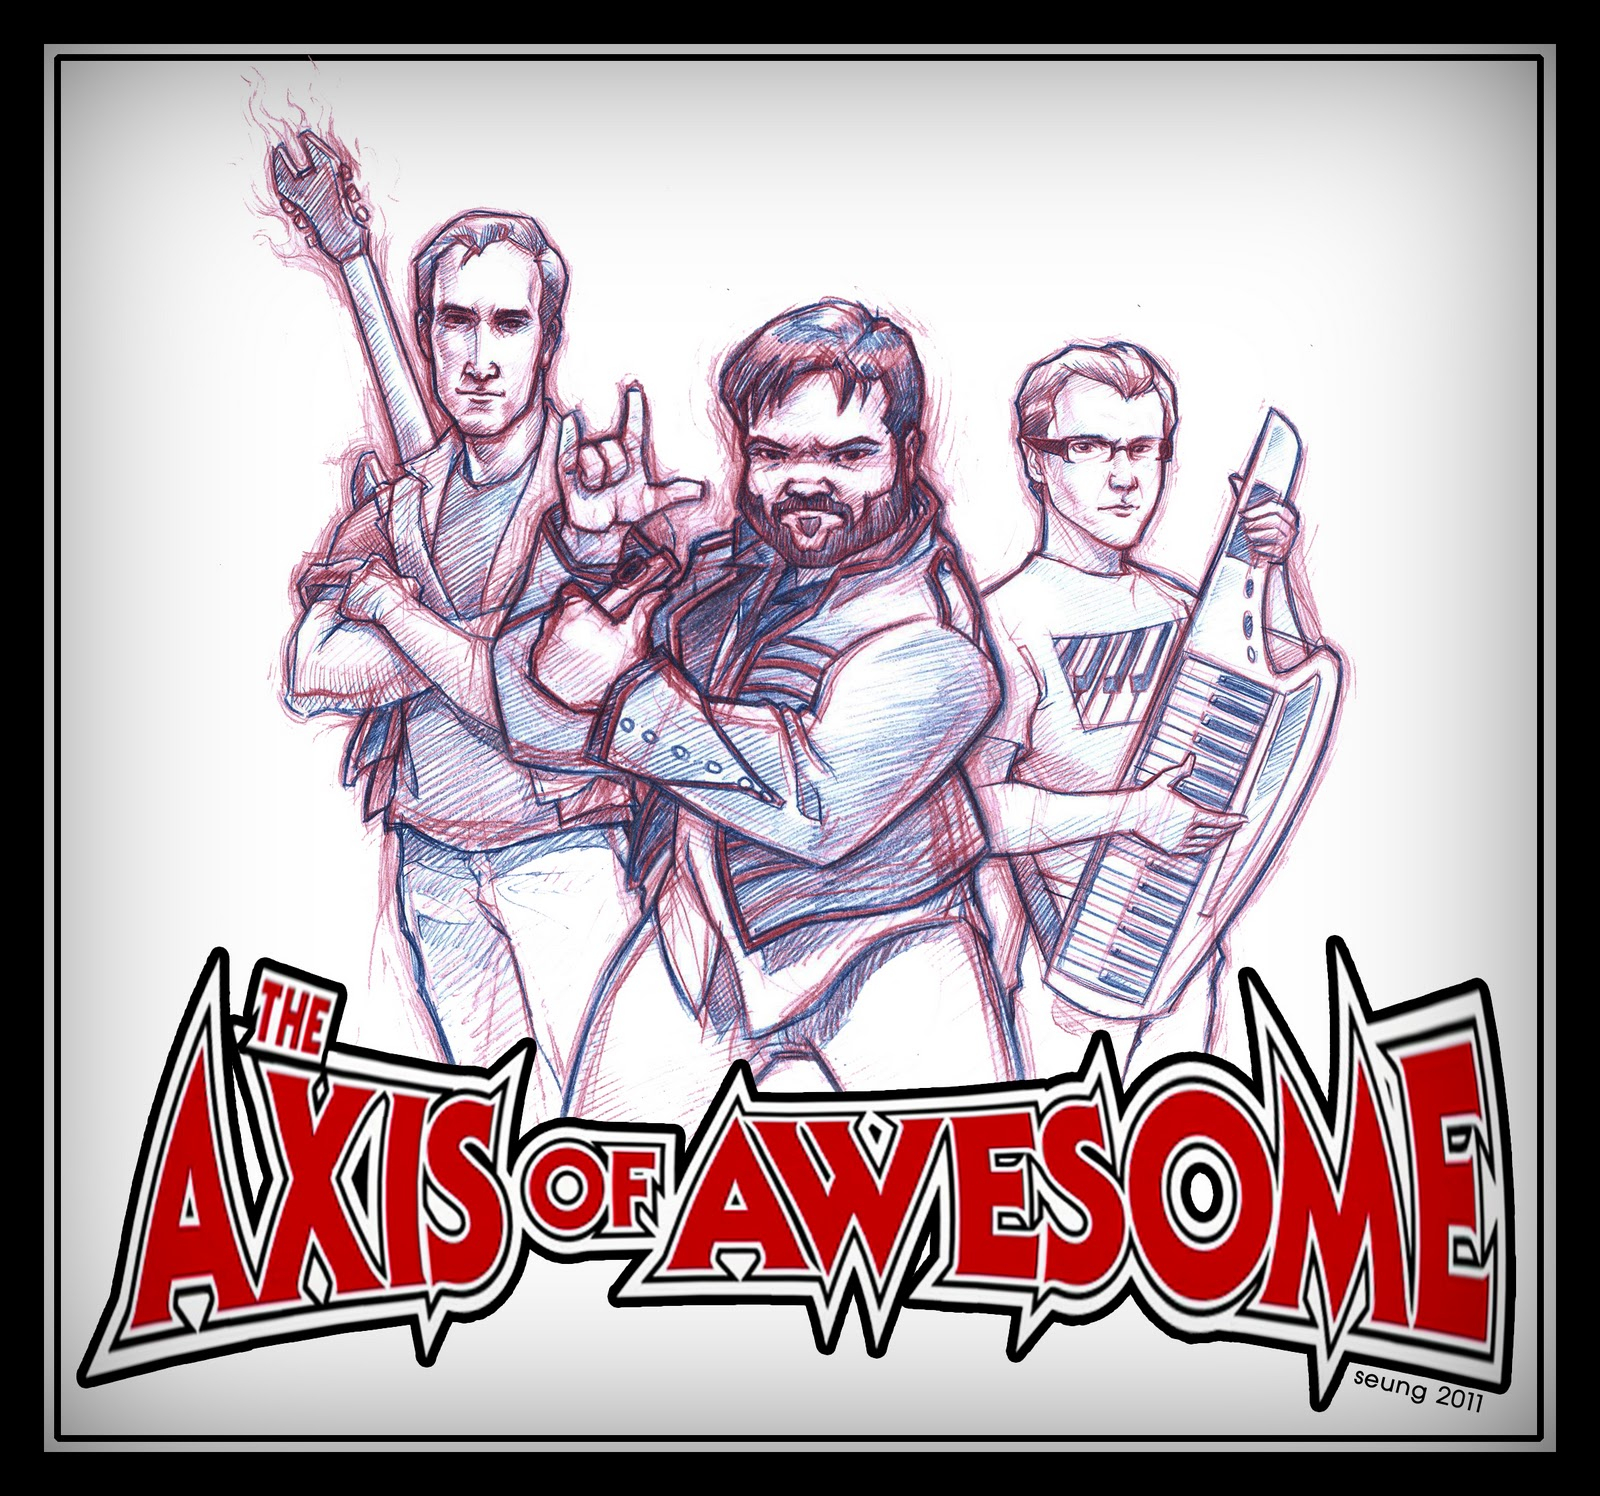 Axis Of Awesome 4 Chords Cover Art For The Axis Of Awesome Seungs Fun Stuff Blog